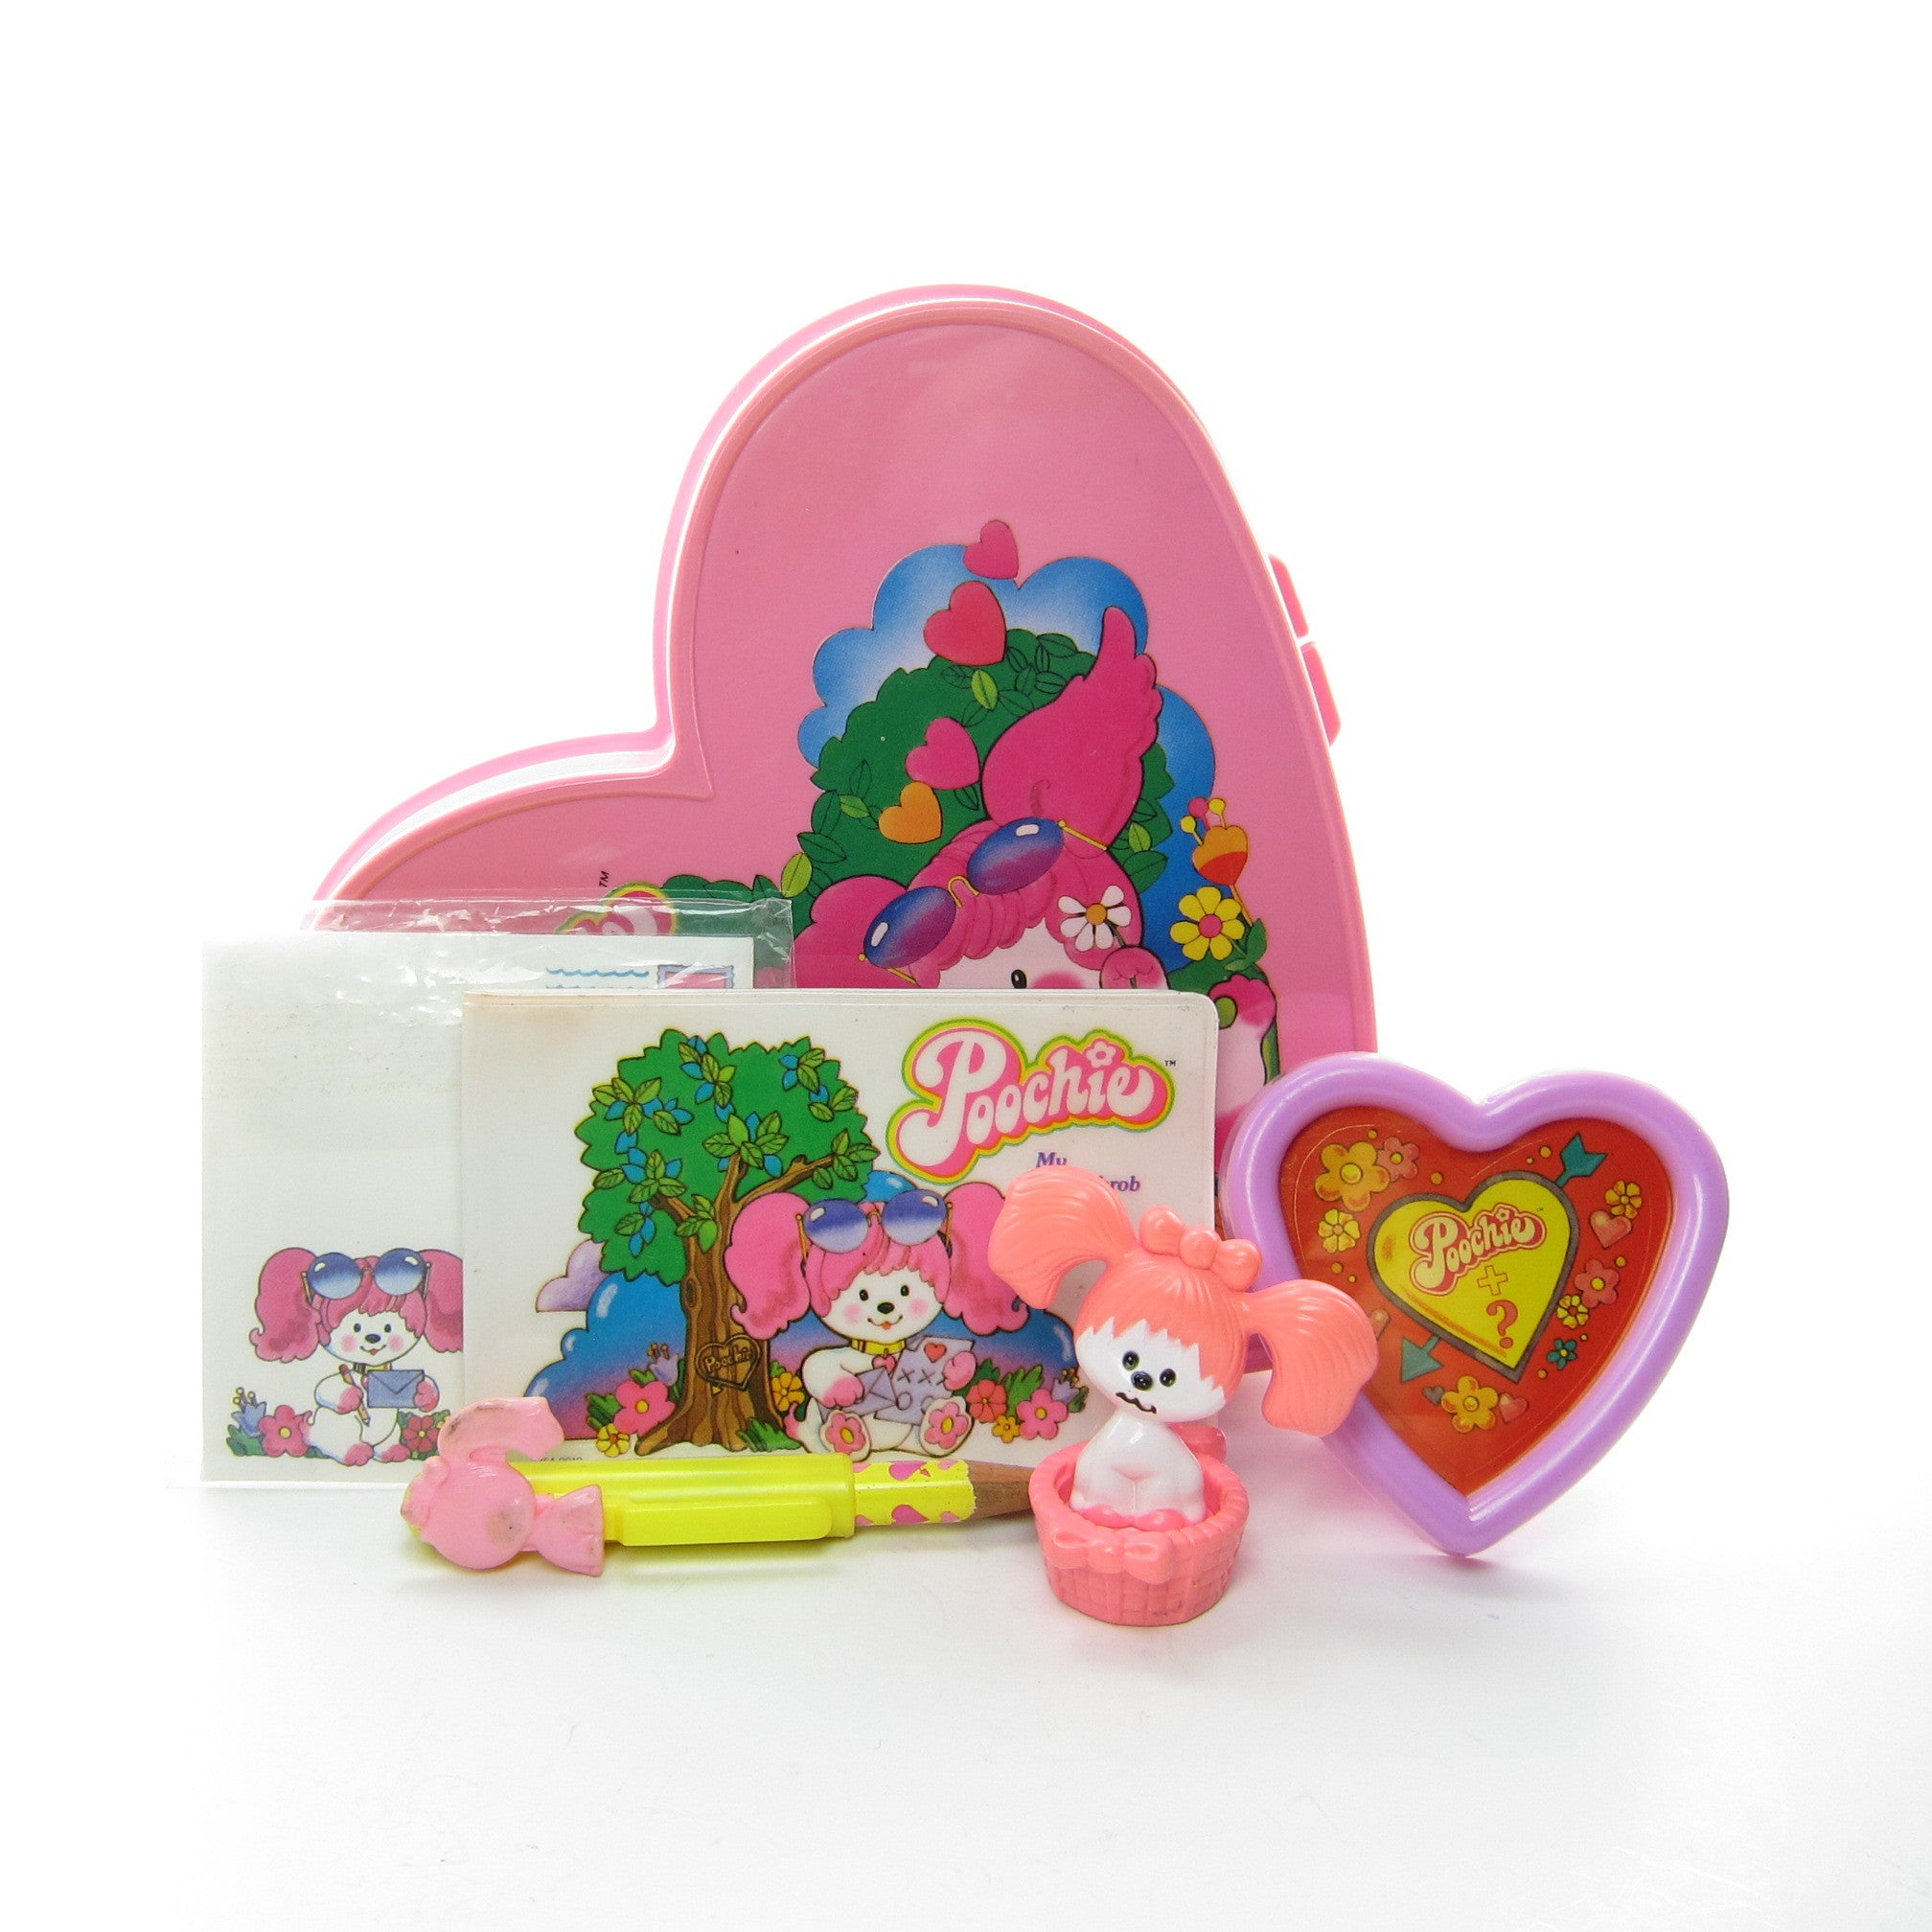 My Heartthrob Box vintage Poochie stationary set